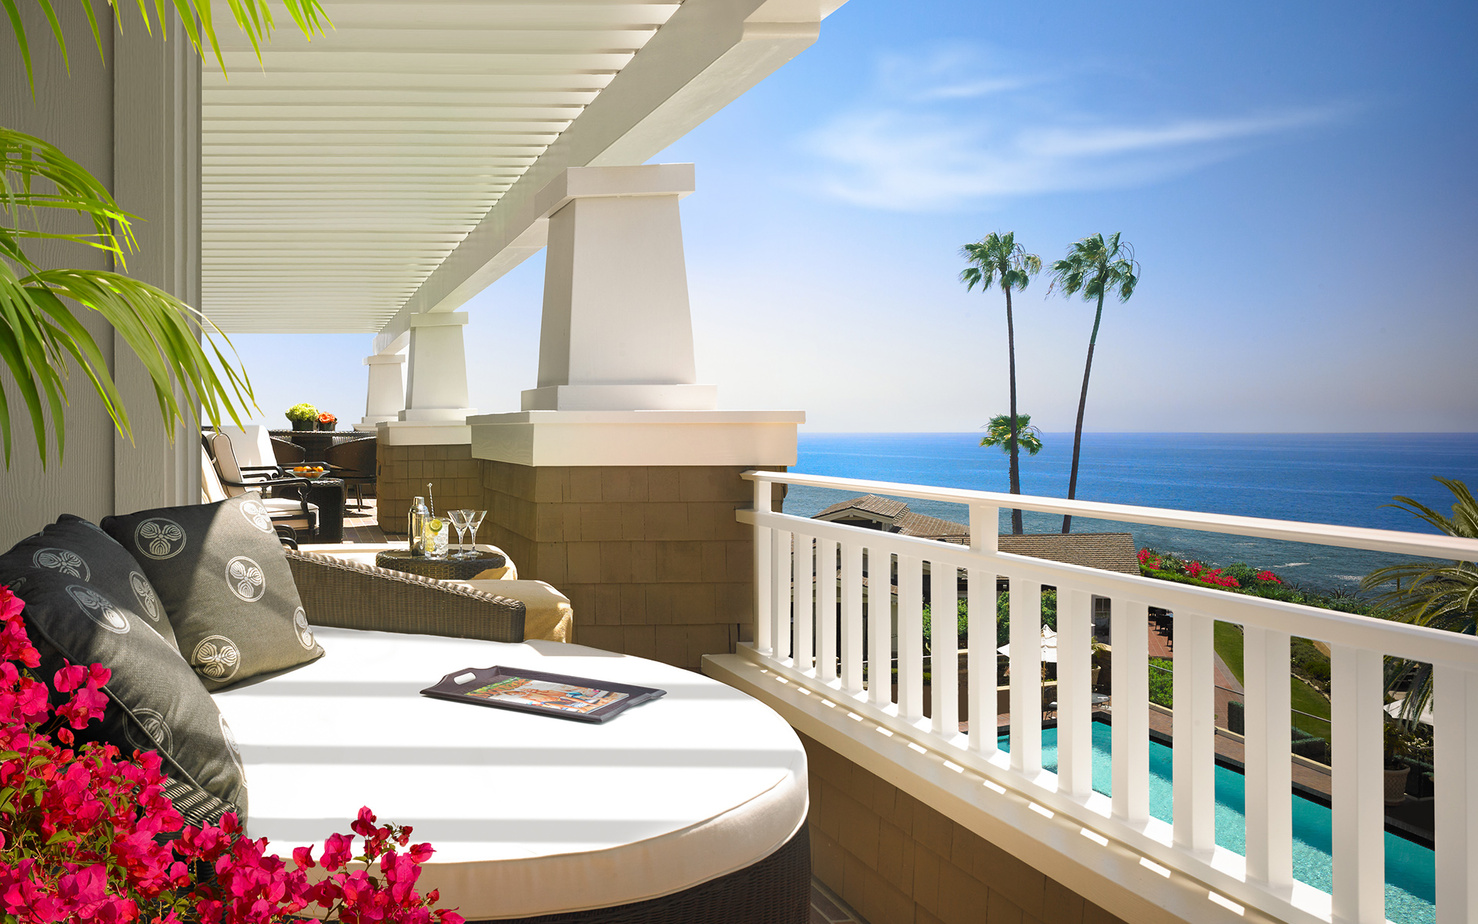 3 Best Hotels In Laguna Beach